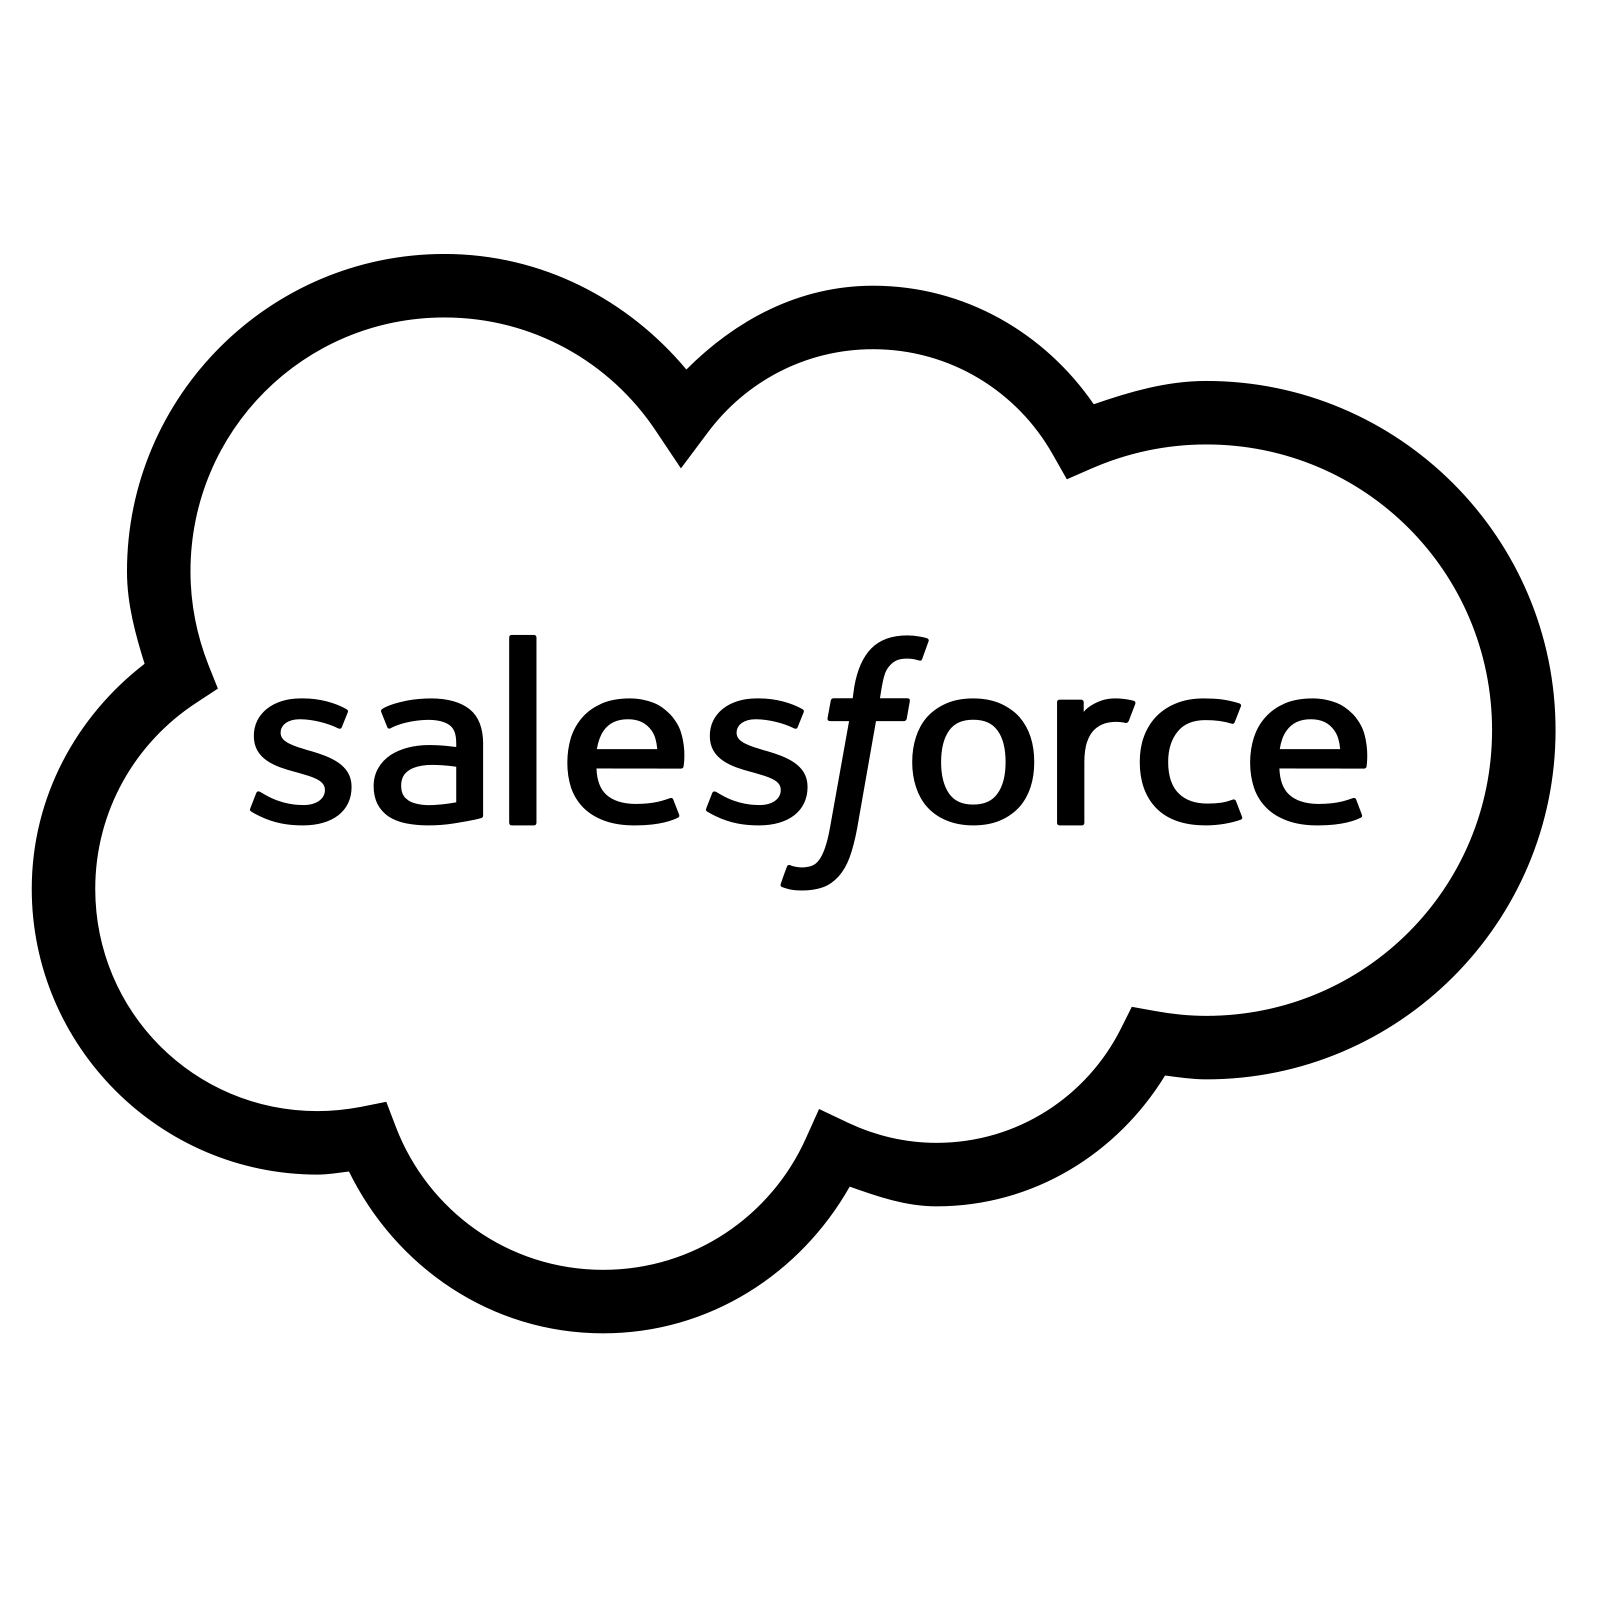 salesforce-logo-vector-png-salesforce-icon-png-50-px-png-svg-1600.png